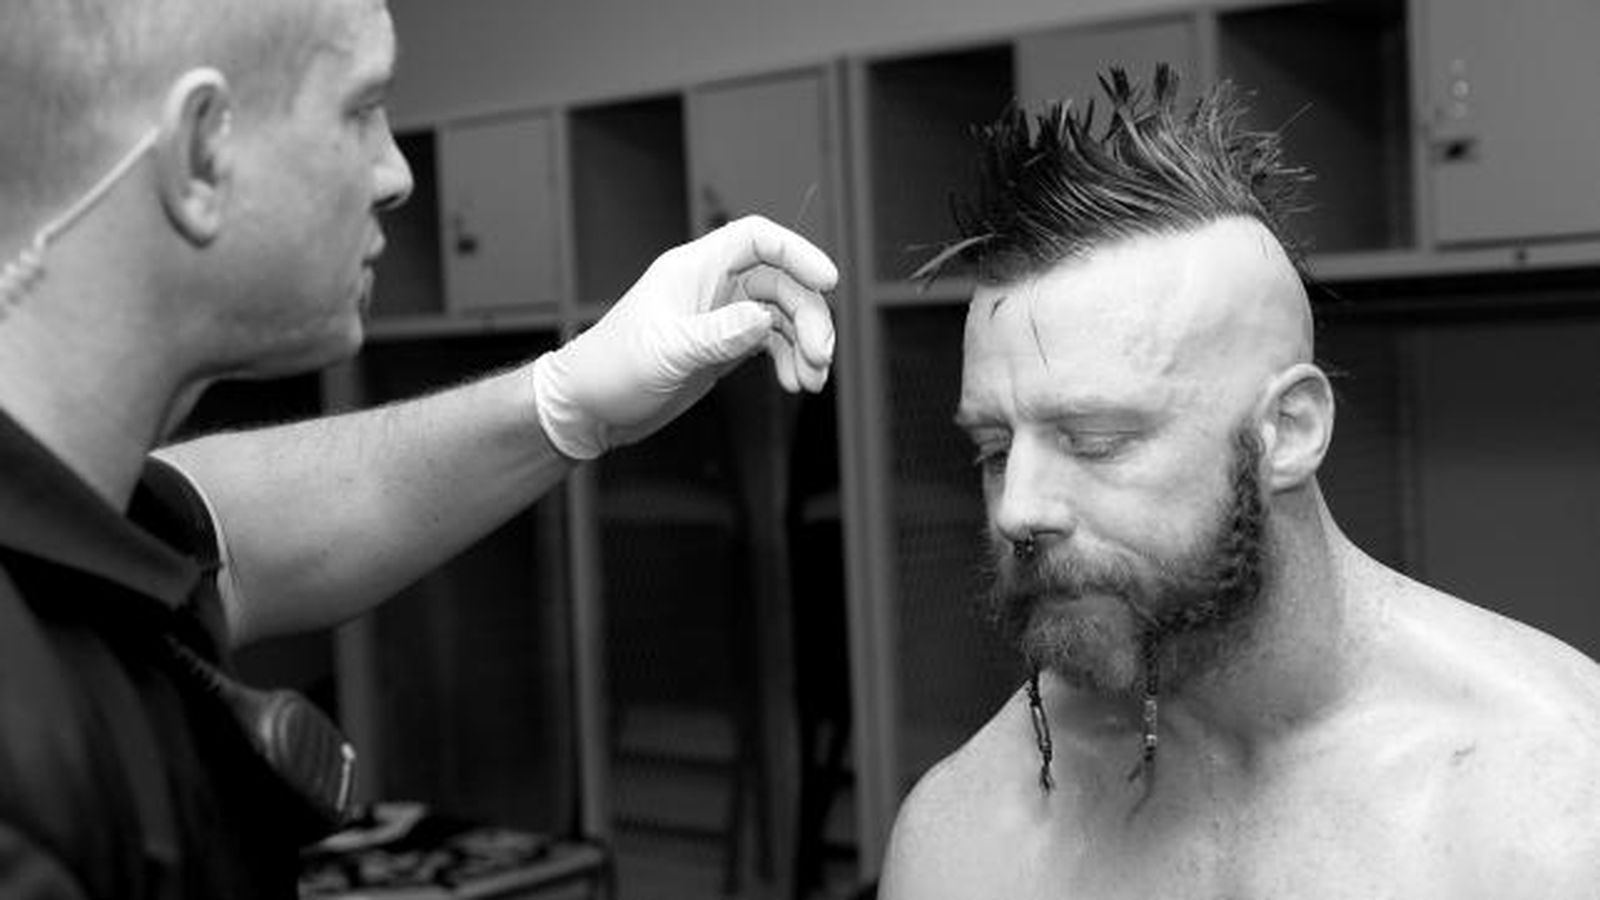 photo of sheamus in an arm cast raises injury questions